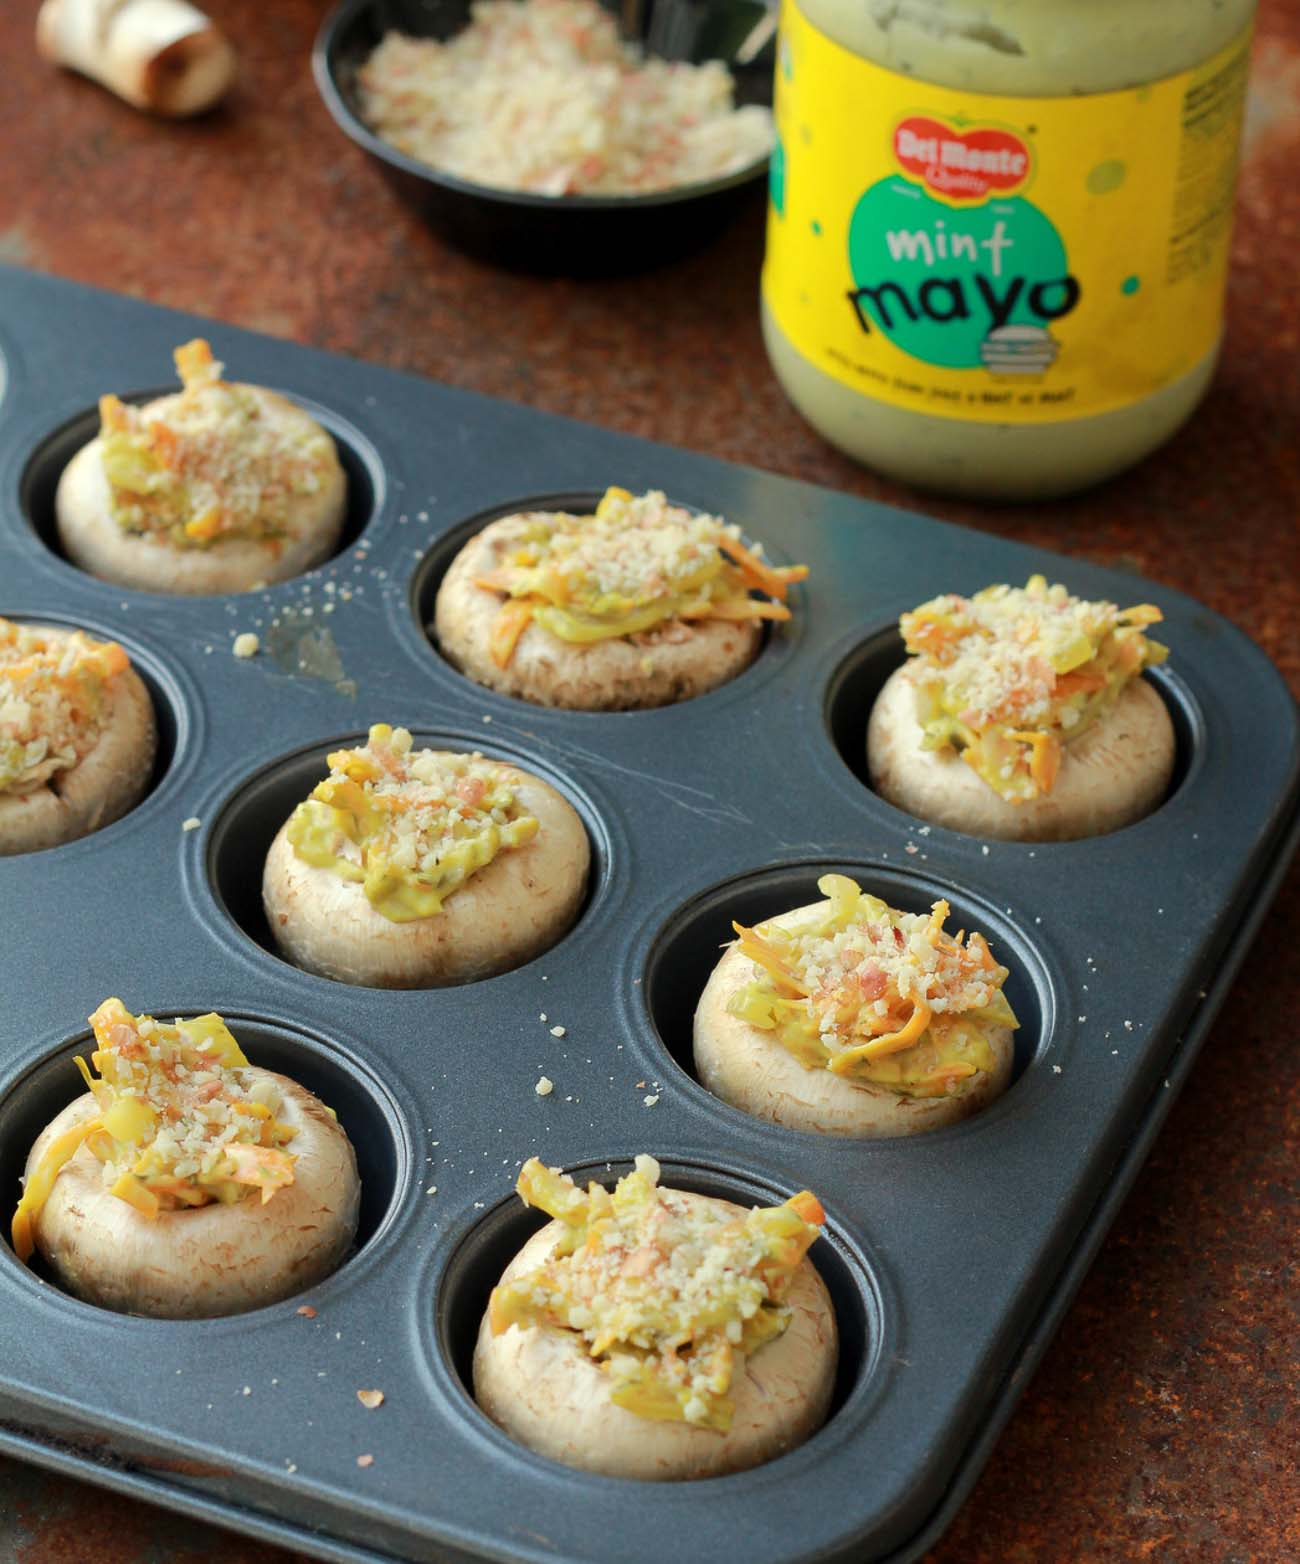 5 step Mushrooms stuffed with carrots and Del Monte Mint Mayo 2